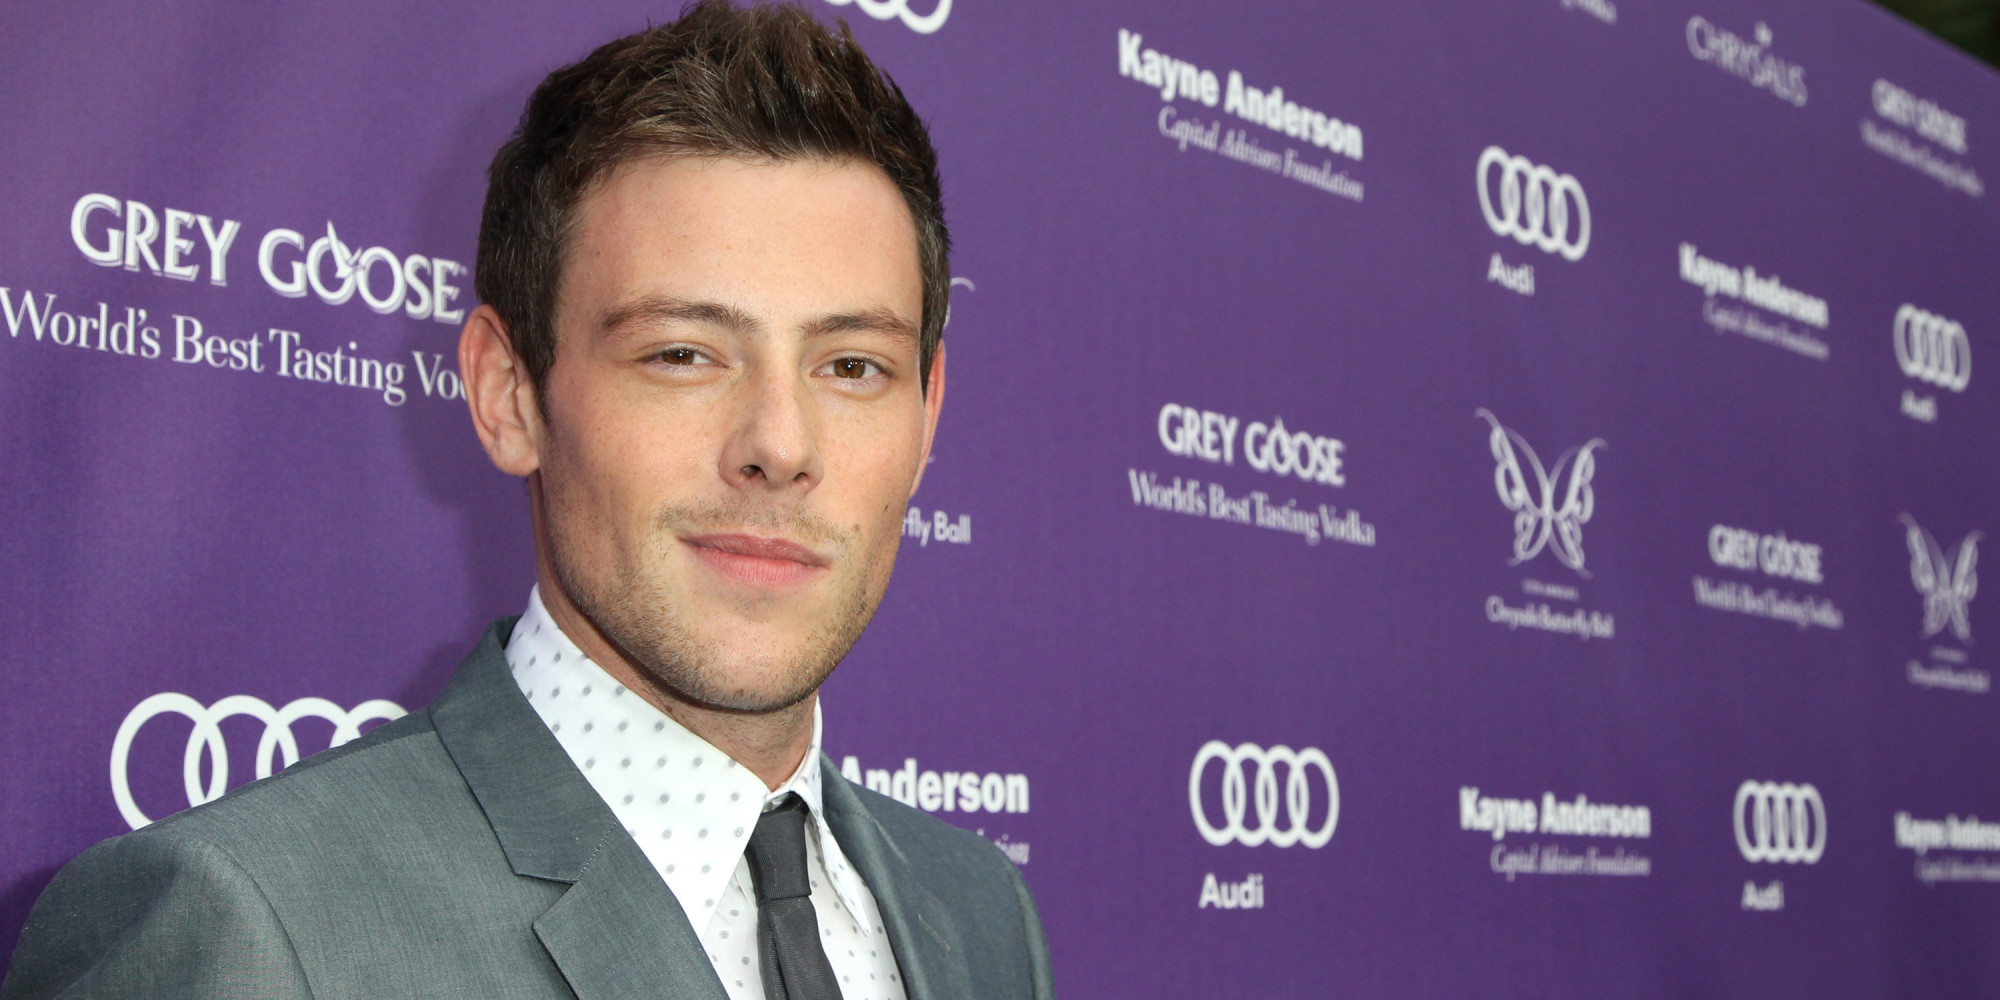 Cory Monteith Death Photo Leaked O-cory-monteith-facebook.jpg